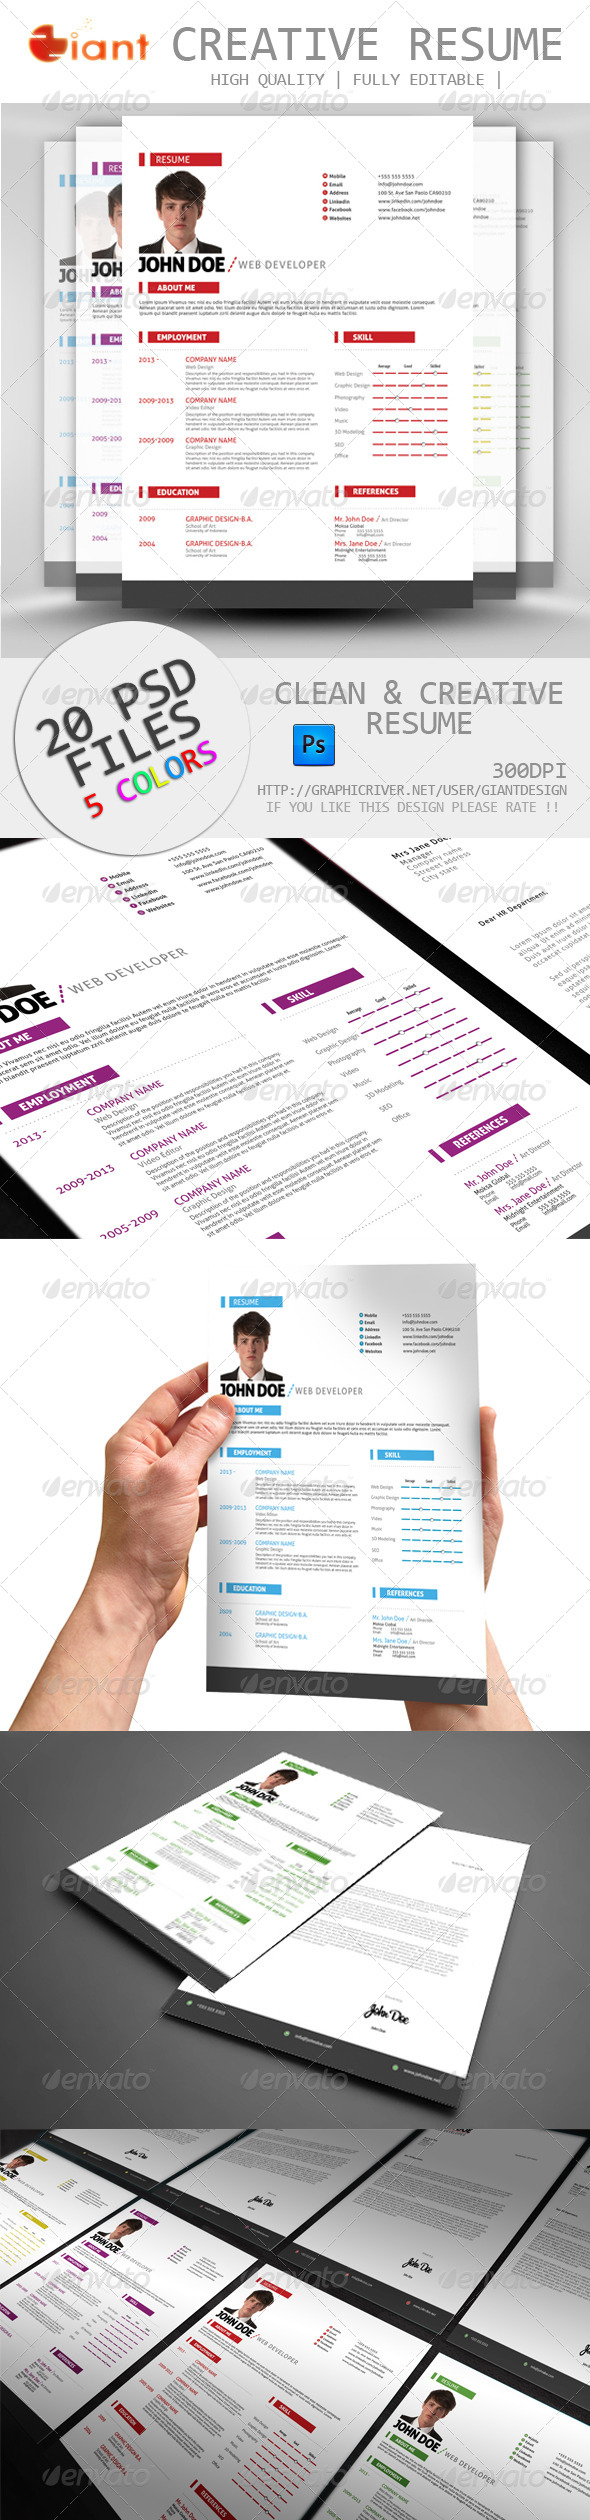 GraphicRiver 5 Colors Resume & Cover Letter 5657824